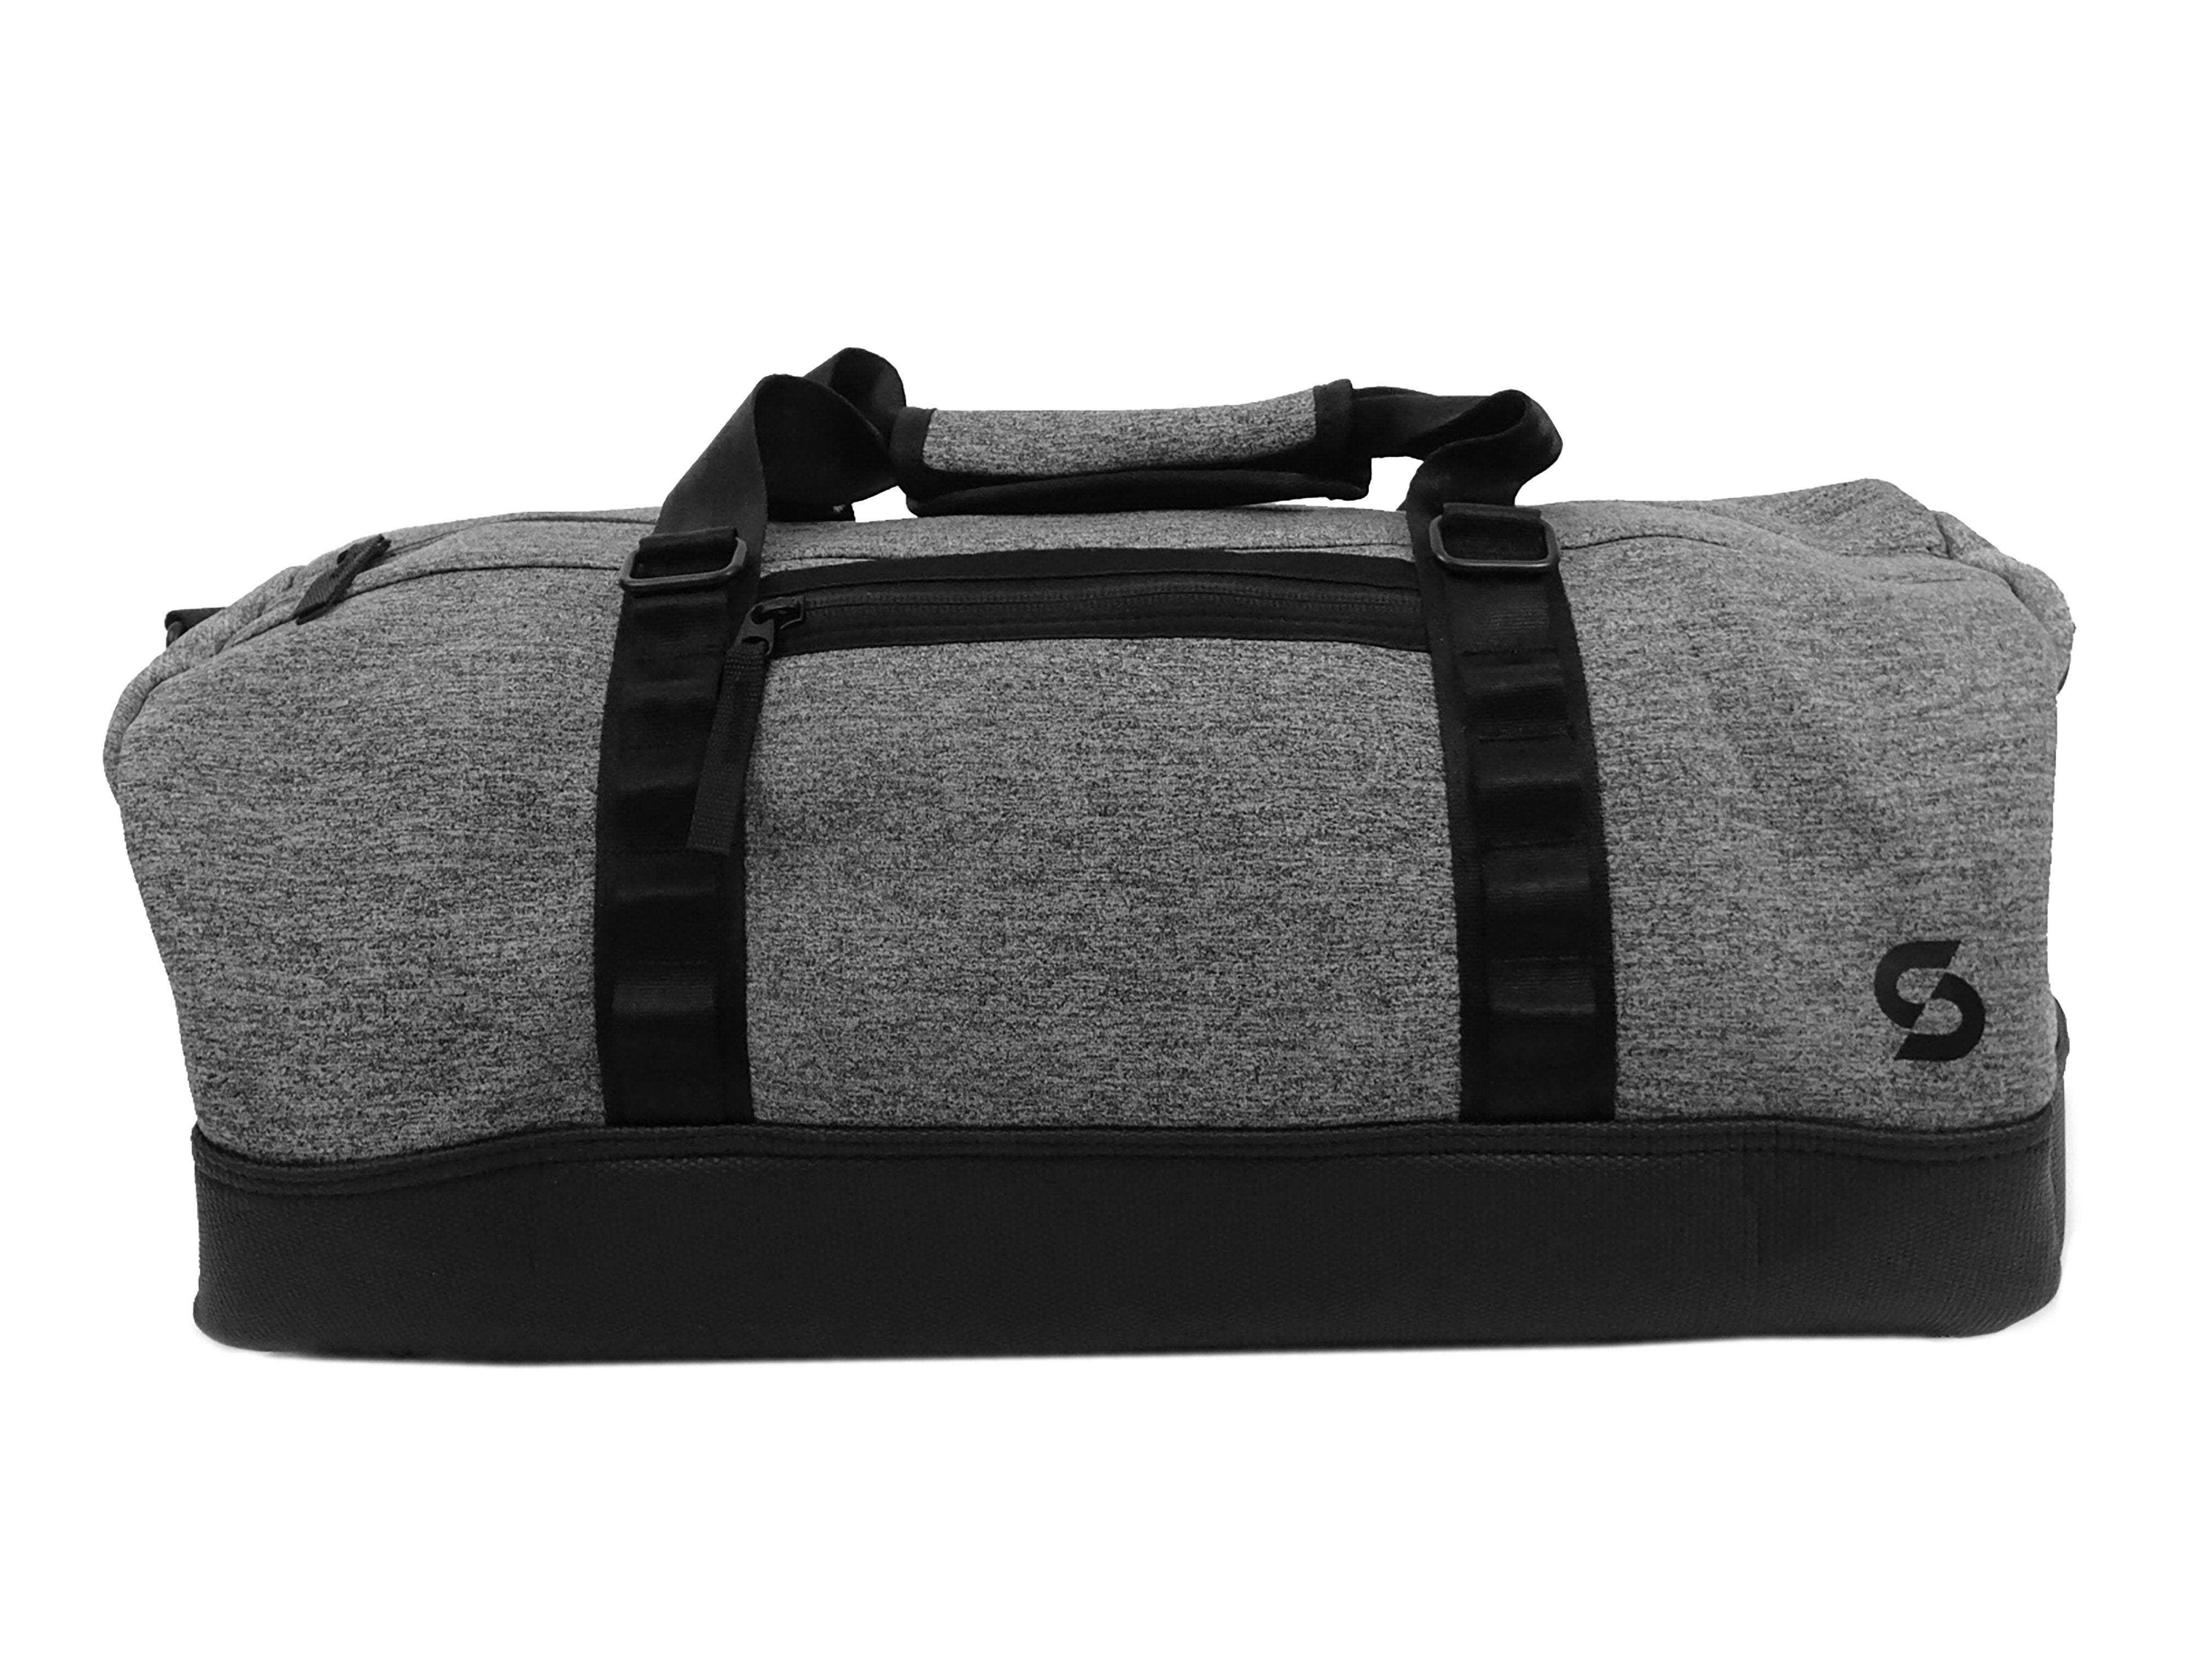 130cecf57a7 The Smassy everyday bag provides maximum neoprene durability and storage.